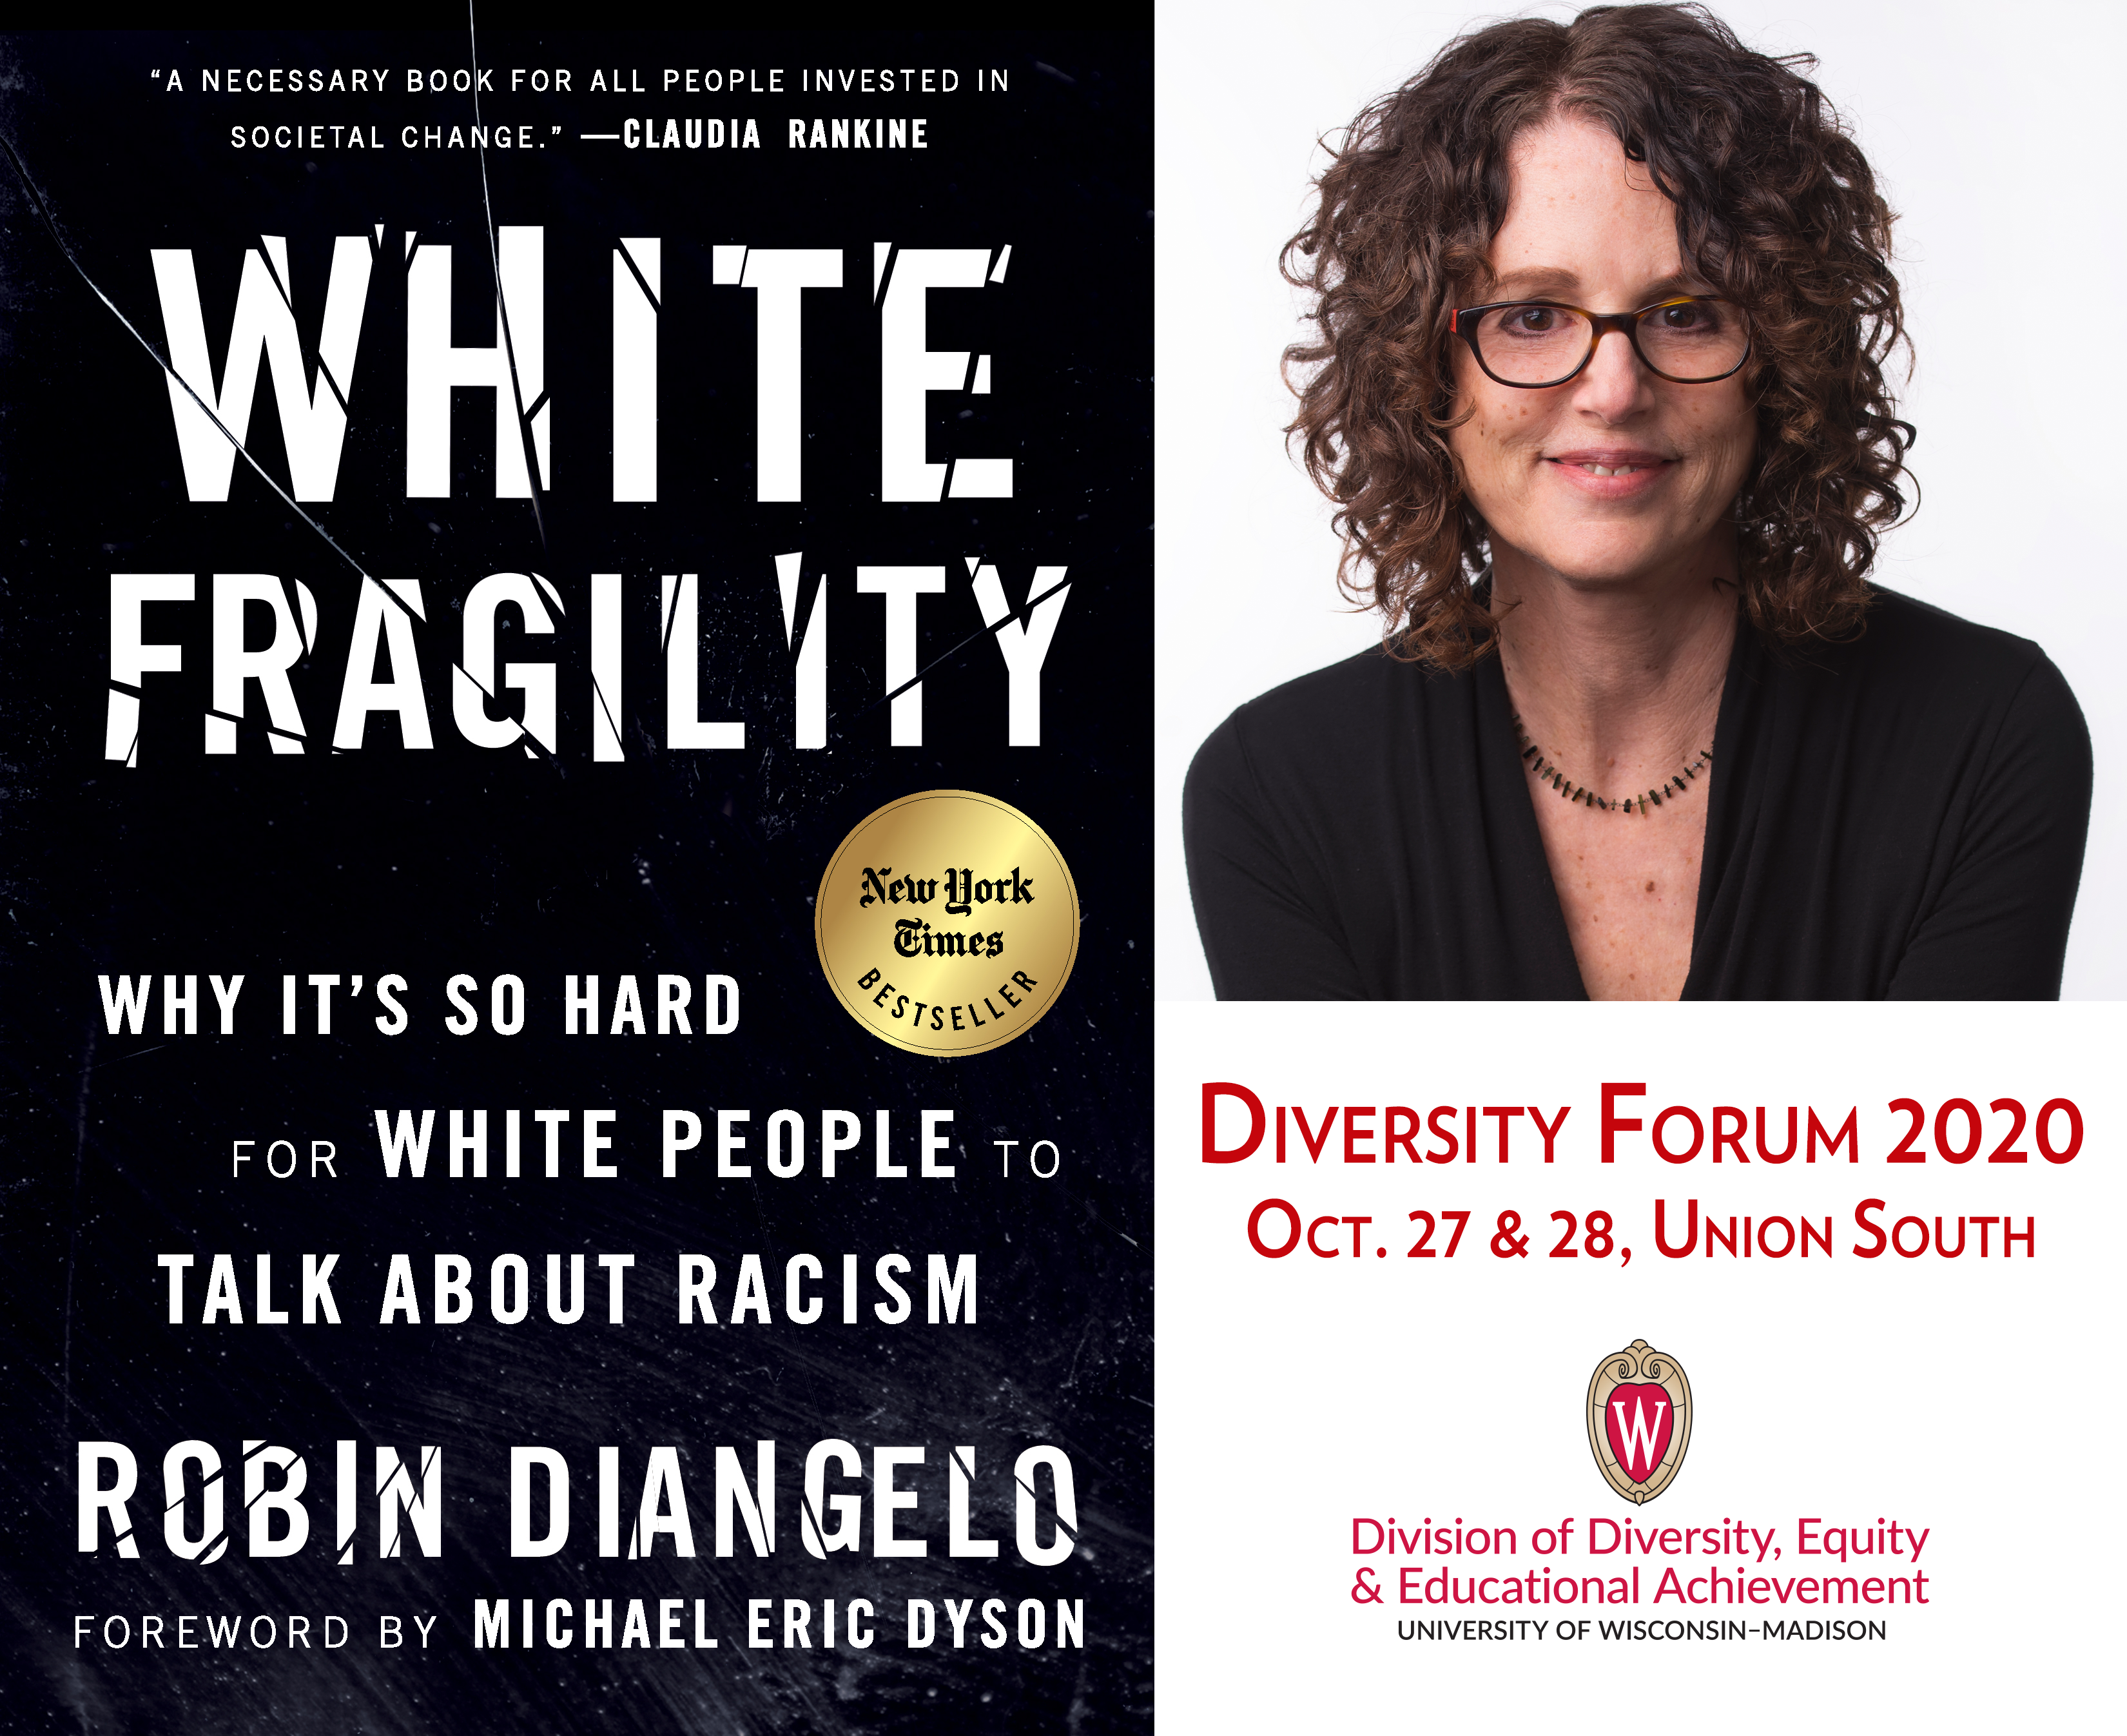 """graphic featuring the book cover for """"White Fragility"""" along with a headshot of the author, Robin DiAngelo"""